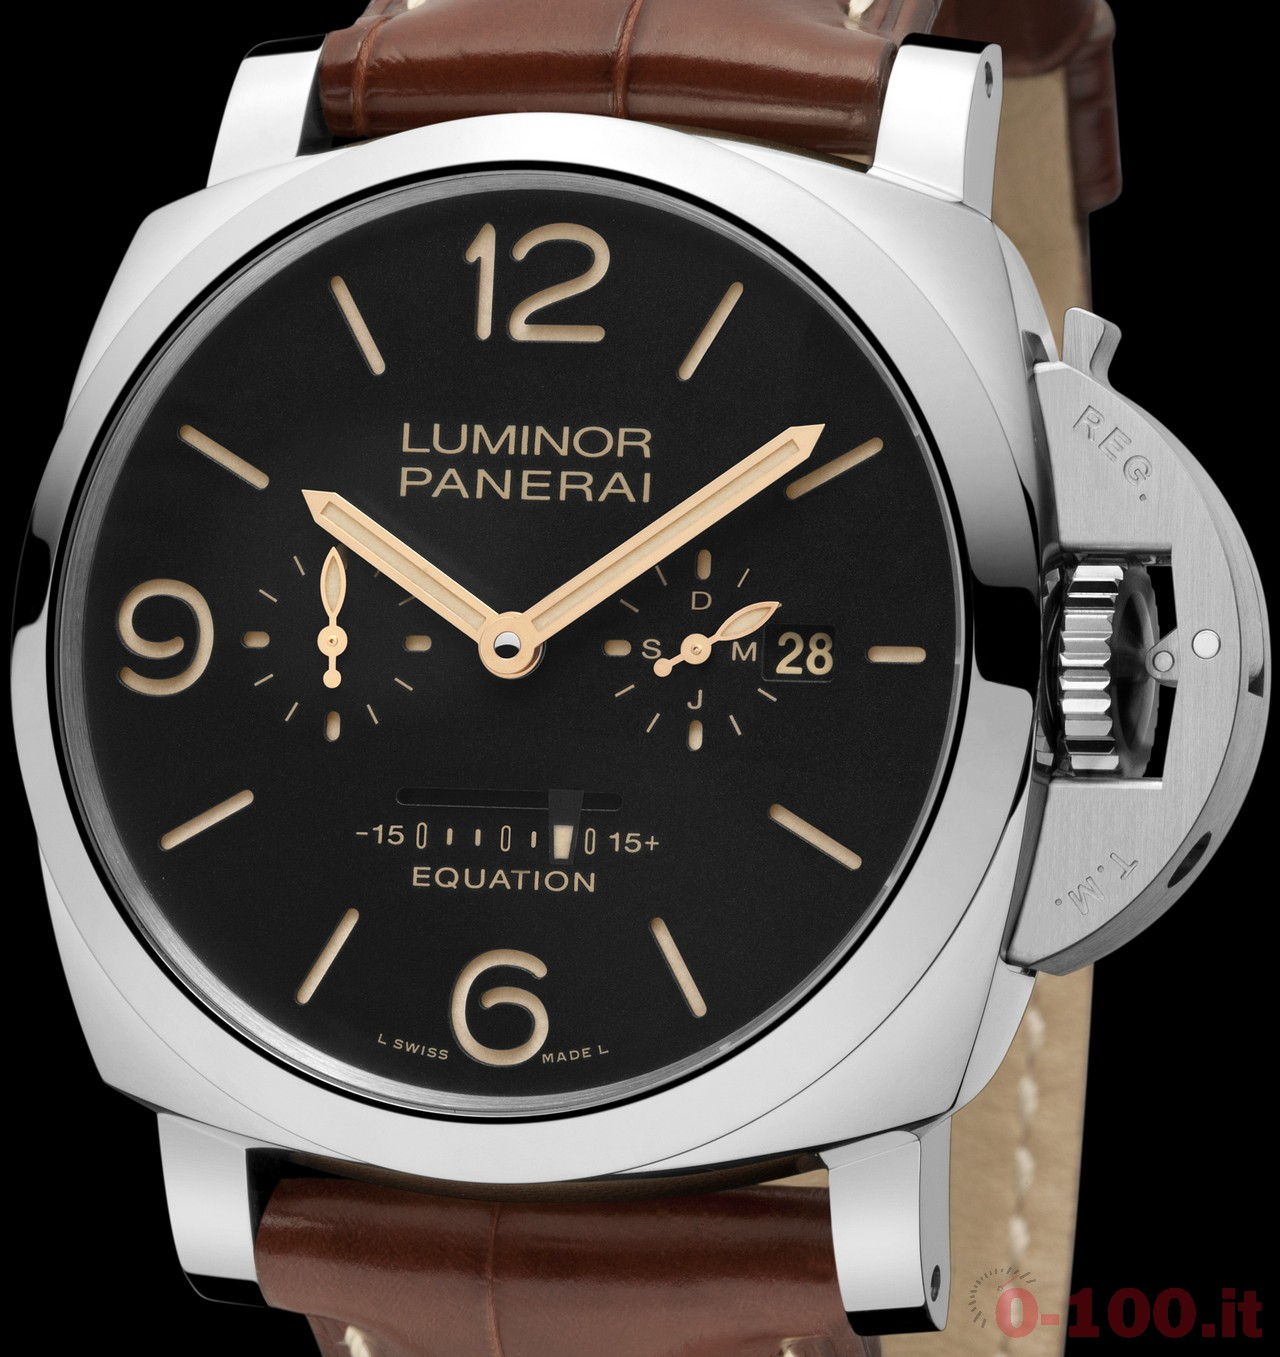 officine-panerai-luminor-1950-equation-of-time-8-days-ref-pam00601-limited-edition_0-100_3